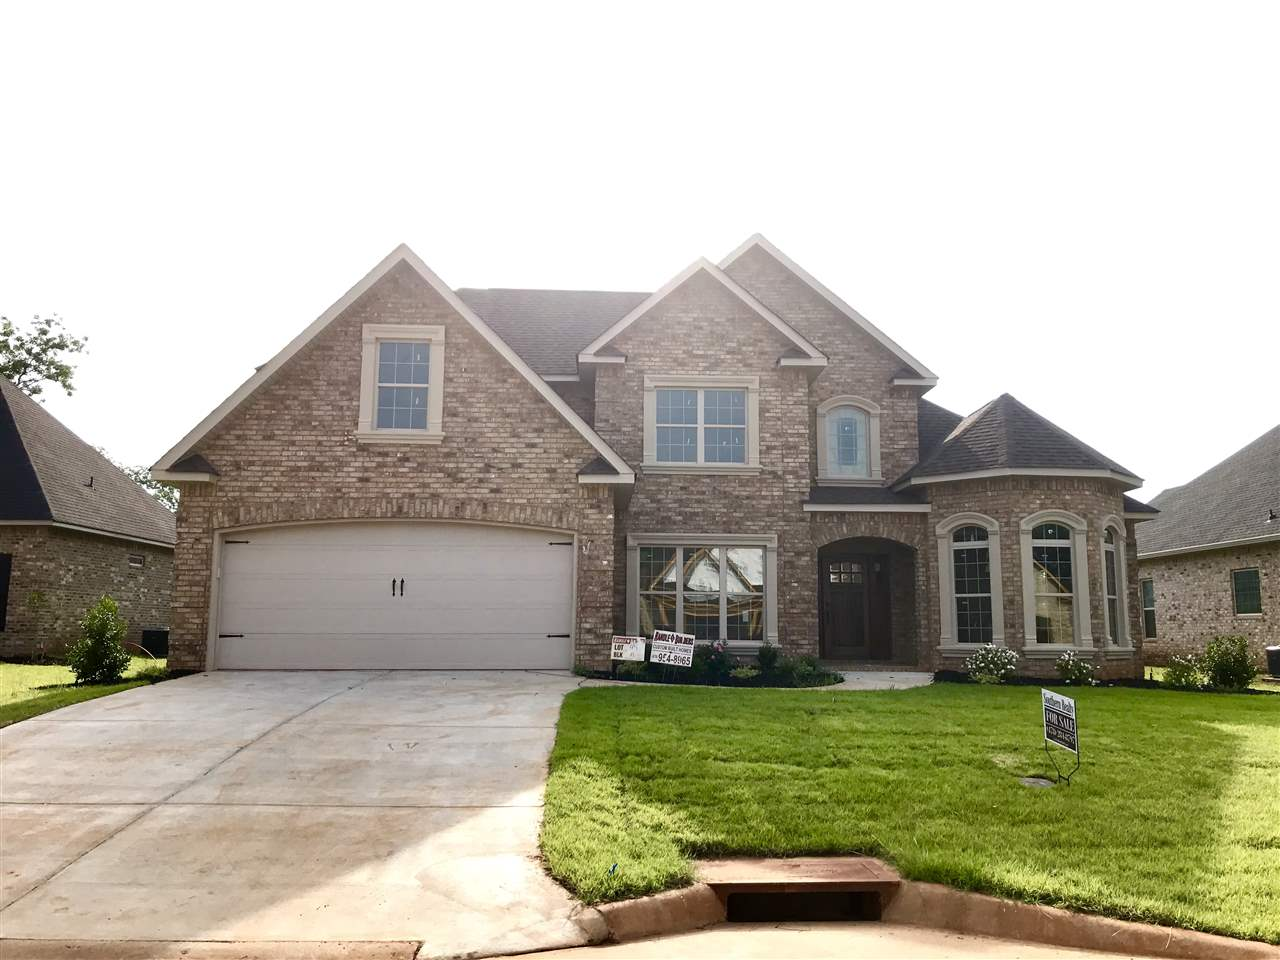 306 Angelina Grace Drive, Warner Robins, GA